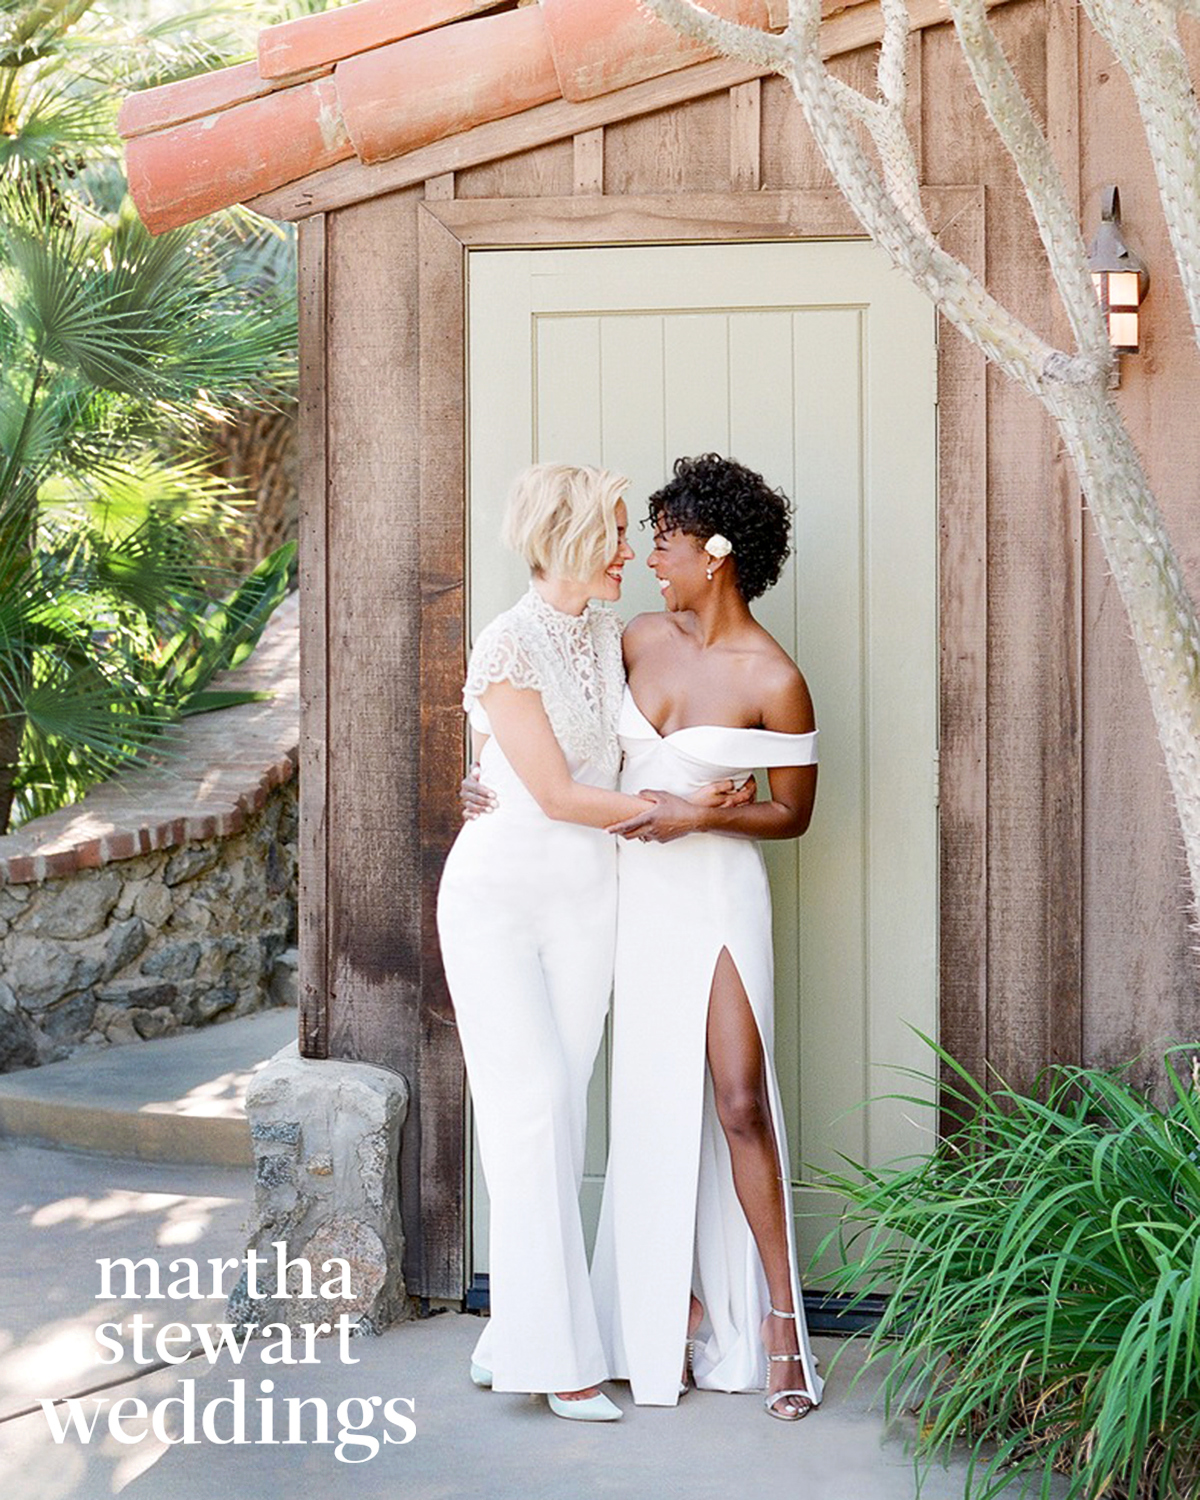 samira wiley lauren morelli wedding second look